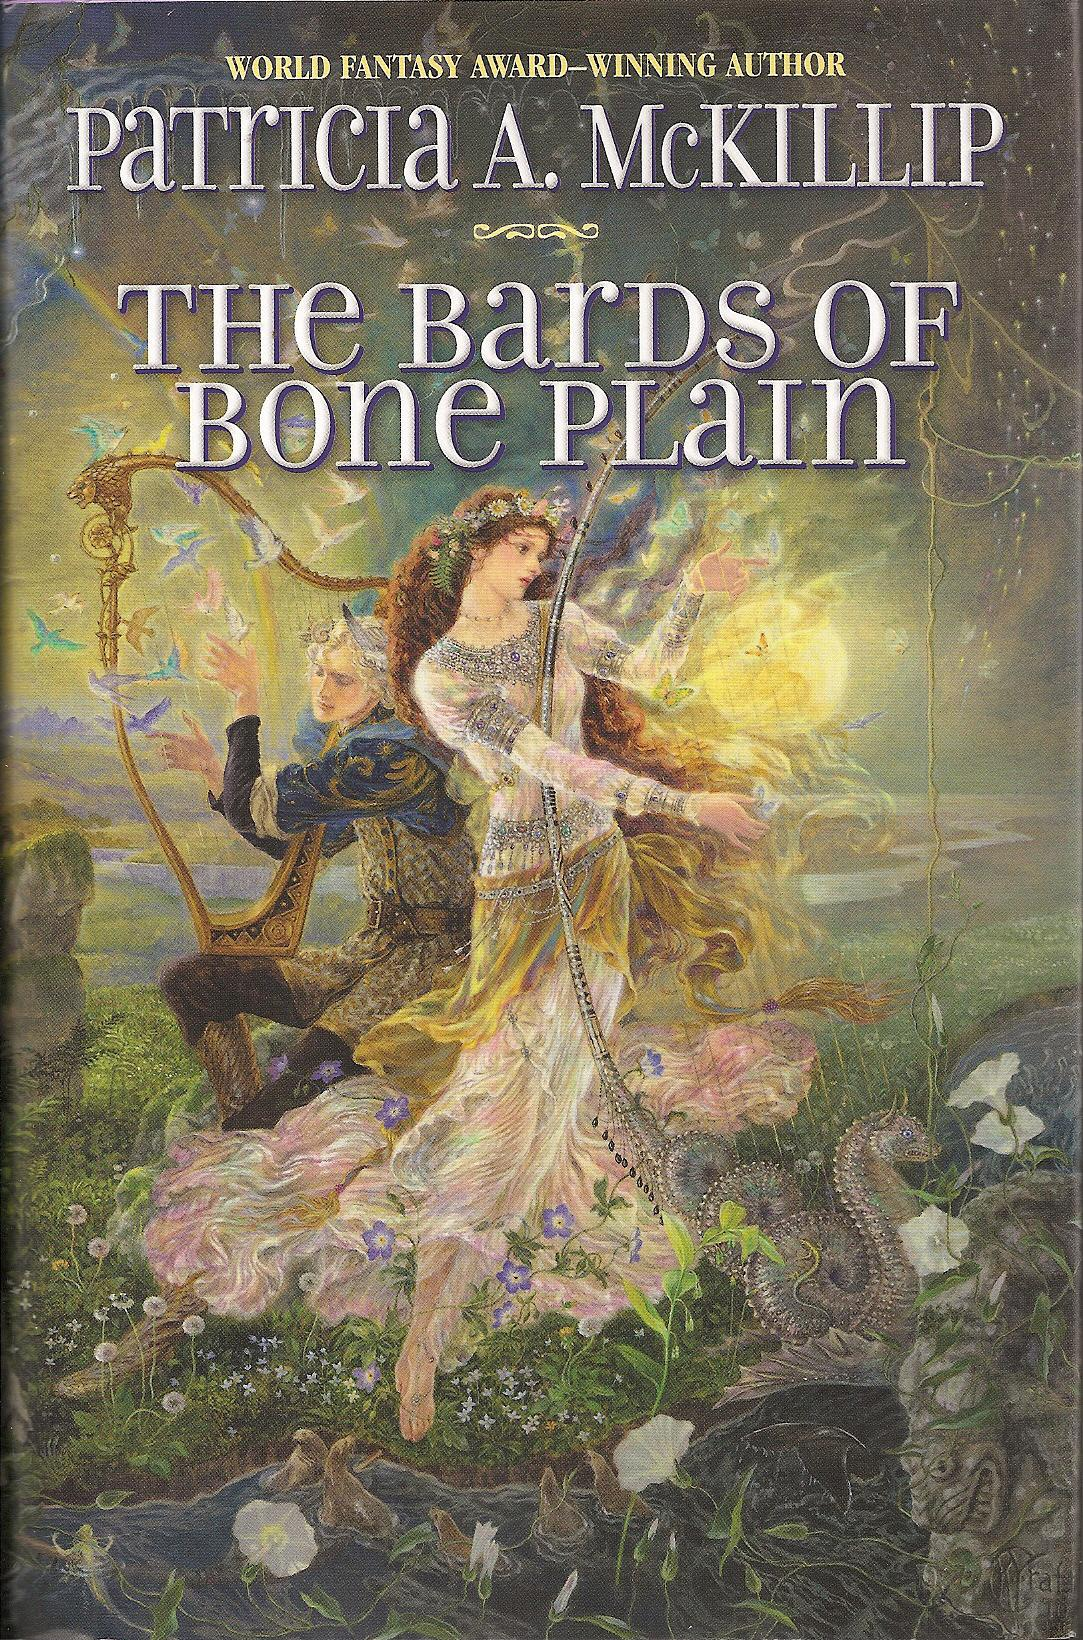 The Bards of Bone Plain